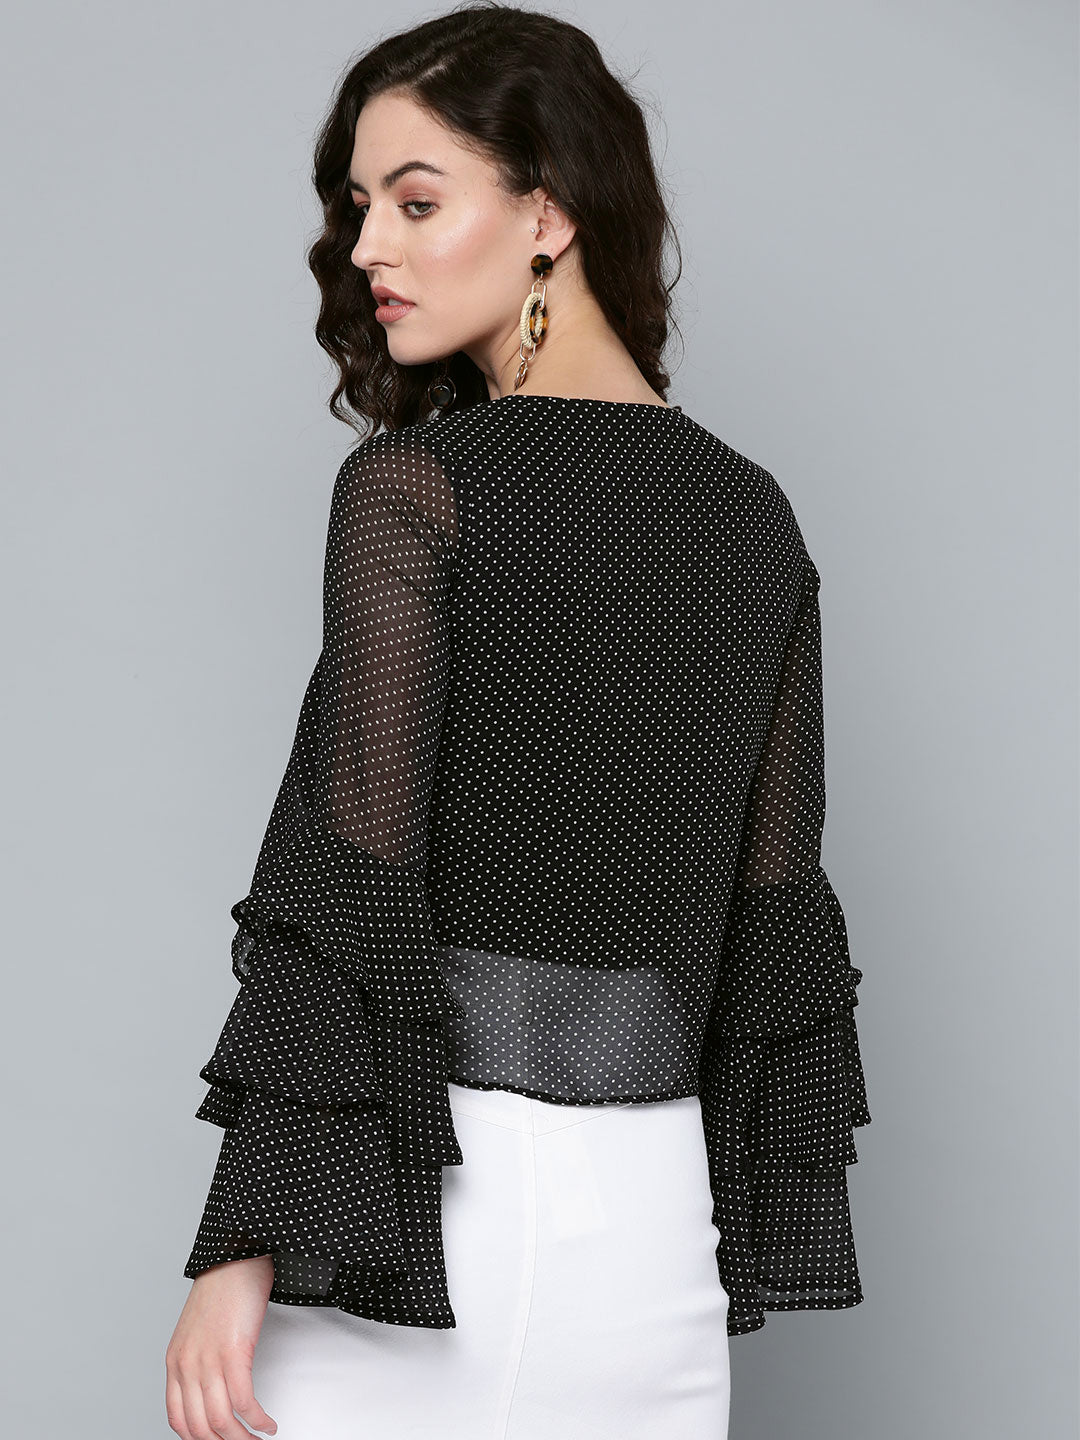 Black Polka Shrug